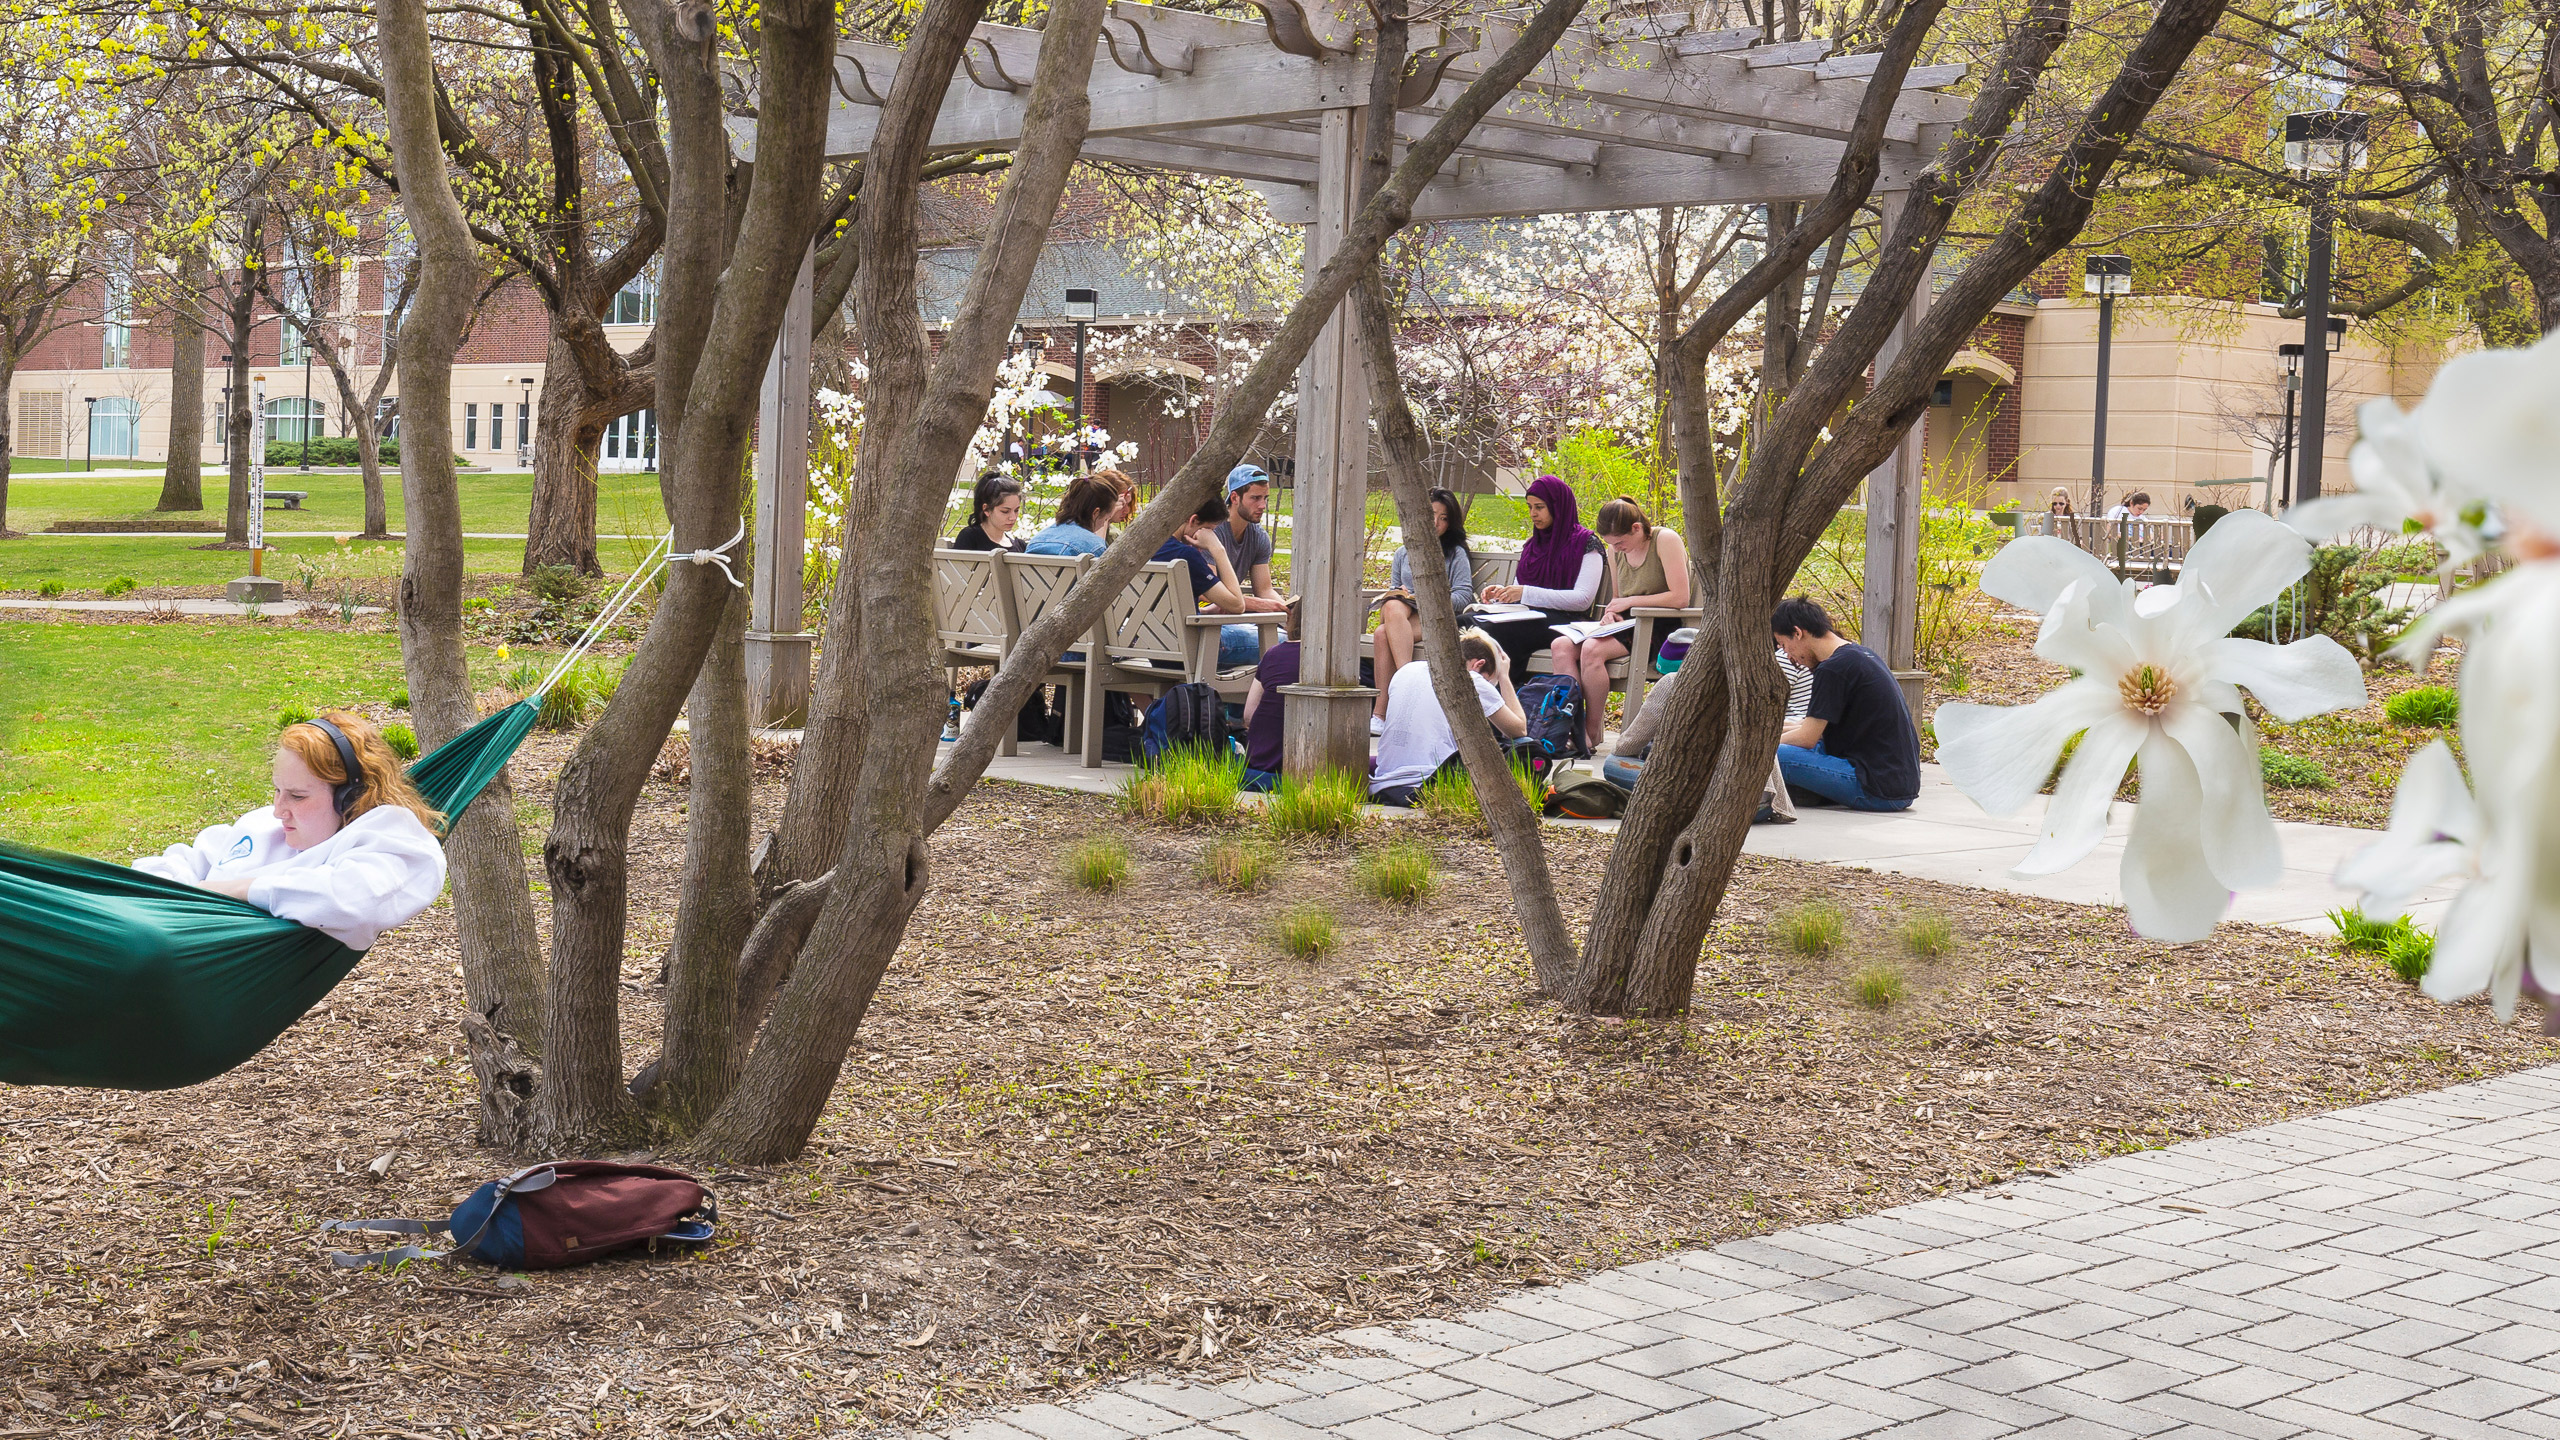 学生们 gathering on campus in springtime.